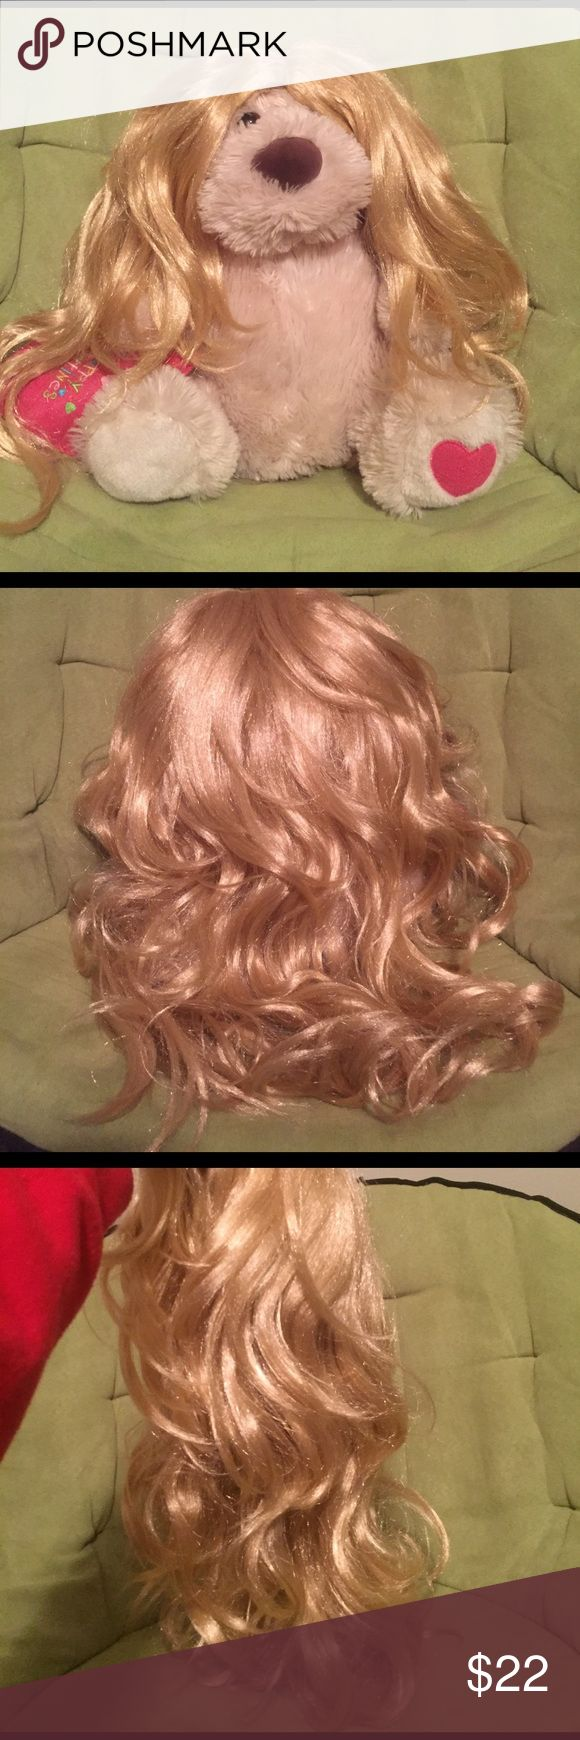 Long curly blonde wig NWOT. Bought for a Halloween costume but never worn it. Long blonde curls. Comes with free bald cap. Other